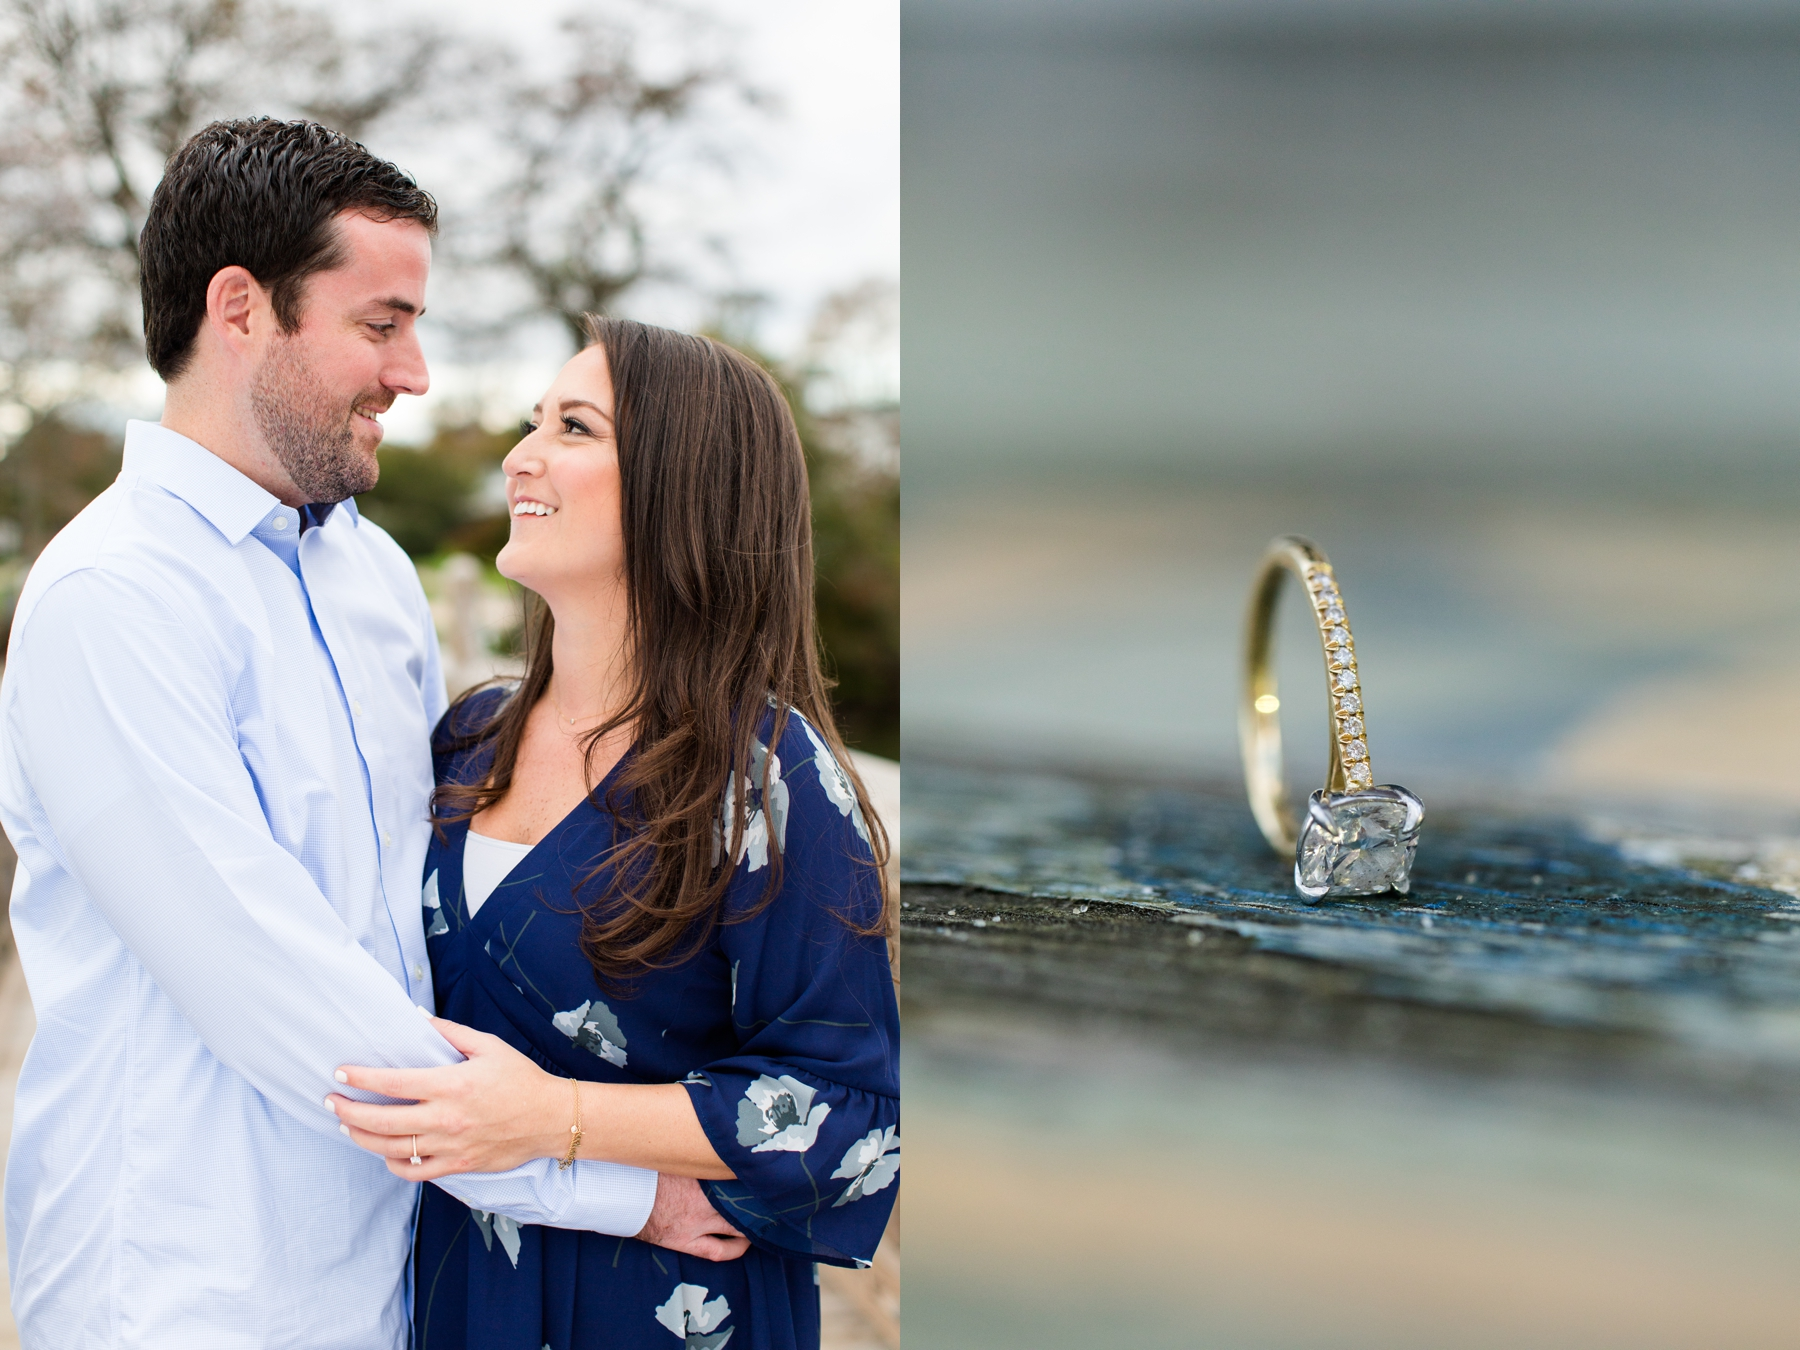 Kira + Jack's Manasquan Beach Engagement Photography